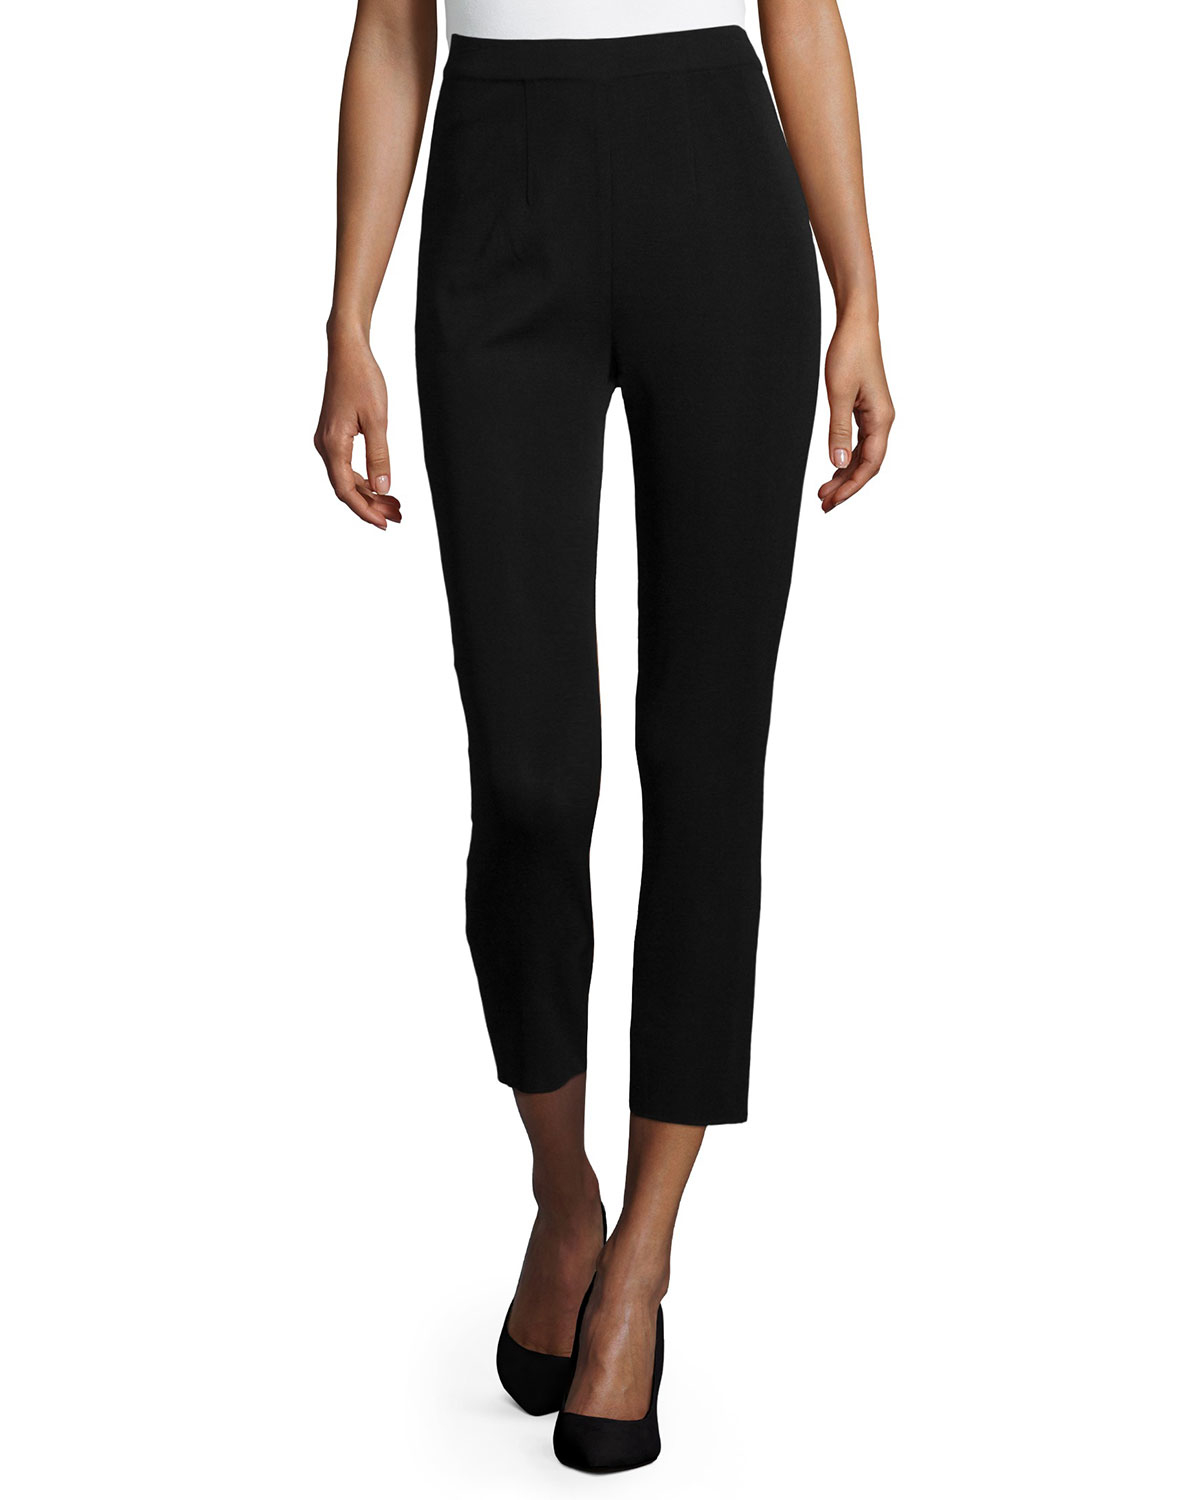 THE LITTLE BLACK PANT IS A WARDROBE ESSENTIAL It's your flattering grab-and-go pant The Little Black Pant™ is your go-to pant for everyday wear – whether work, play or out for the evening. It coordinates with everything in your closet, and it's so comfortable to put on and wear all day or all night.